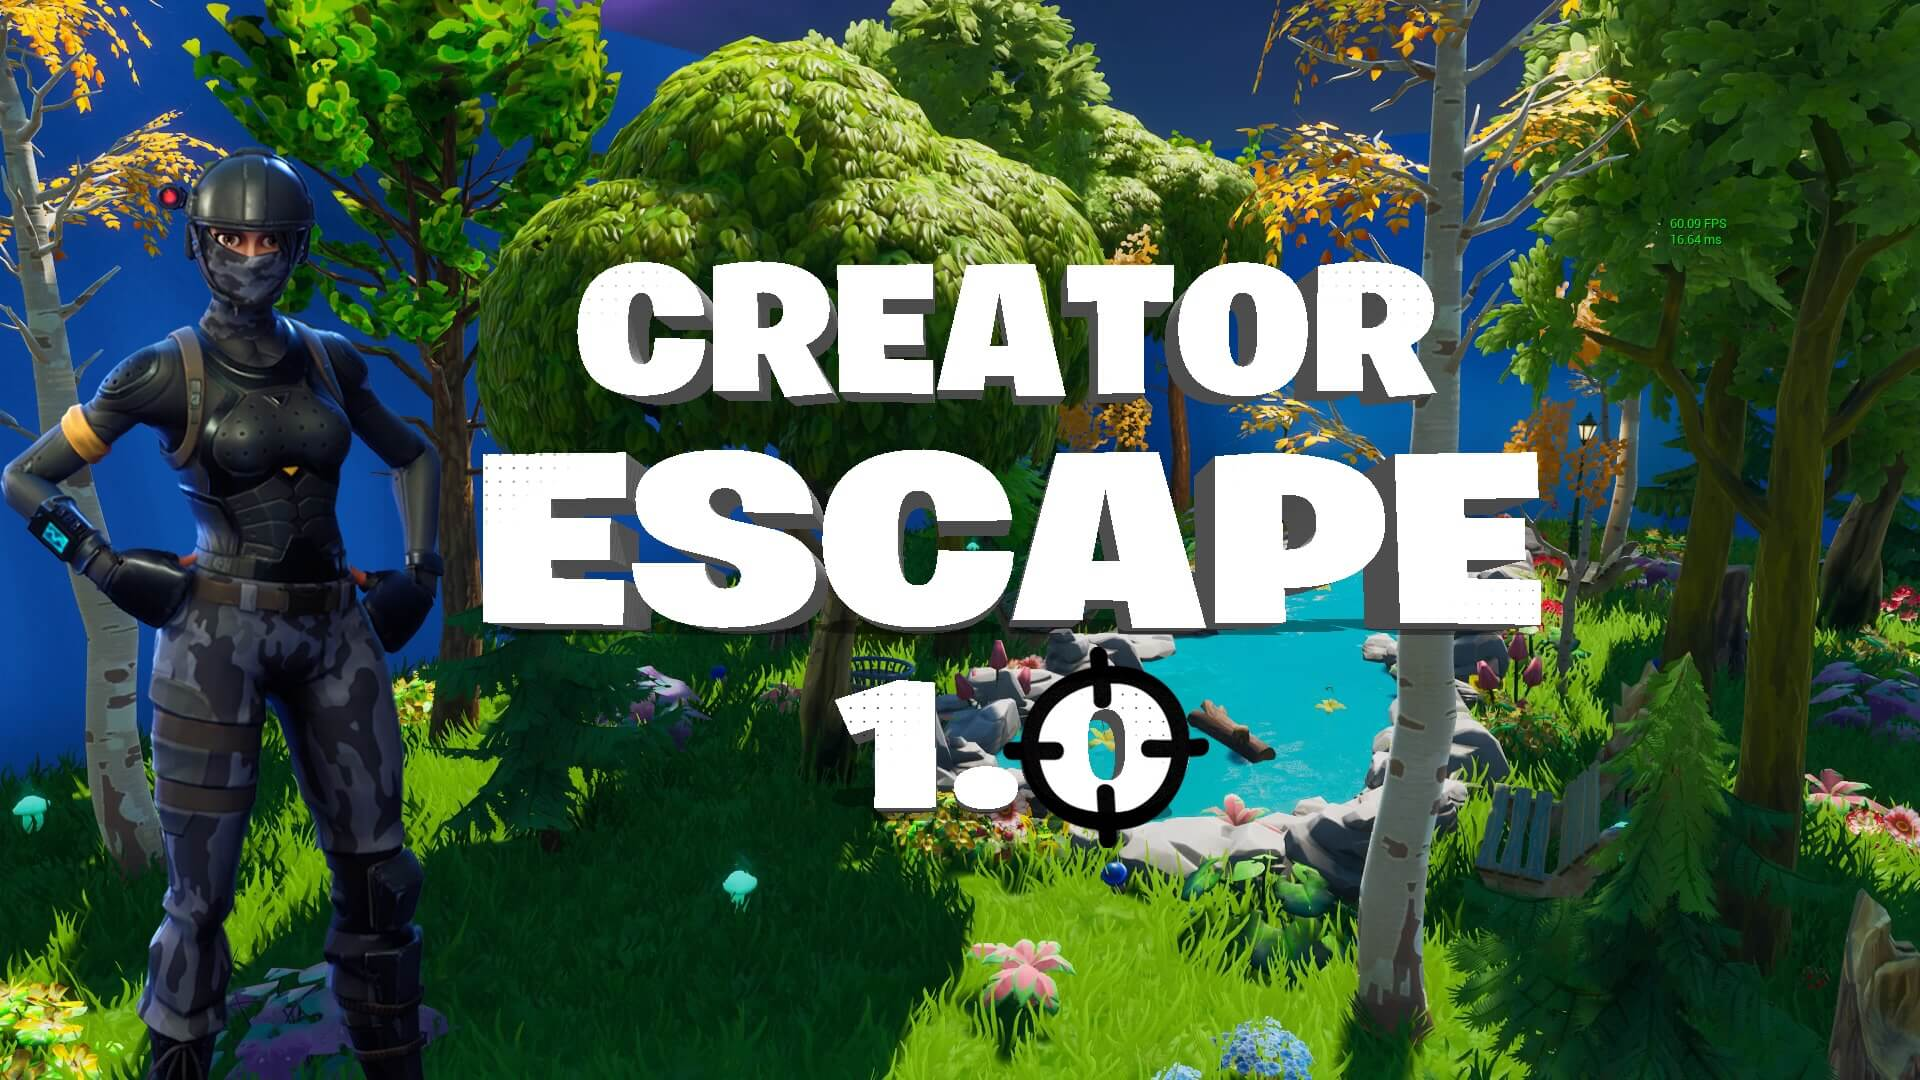 CREATOR ESCAPE 1.0